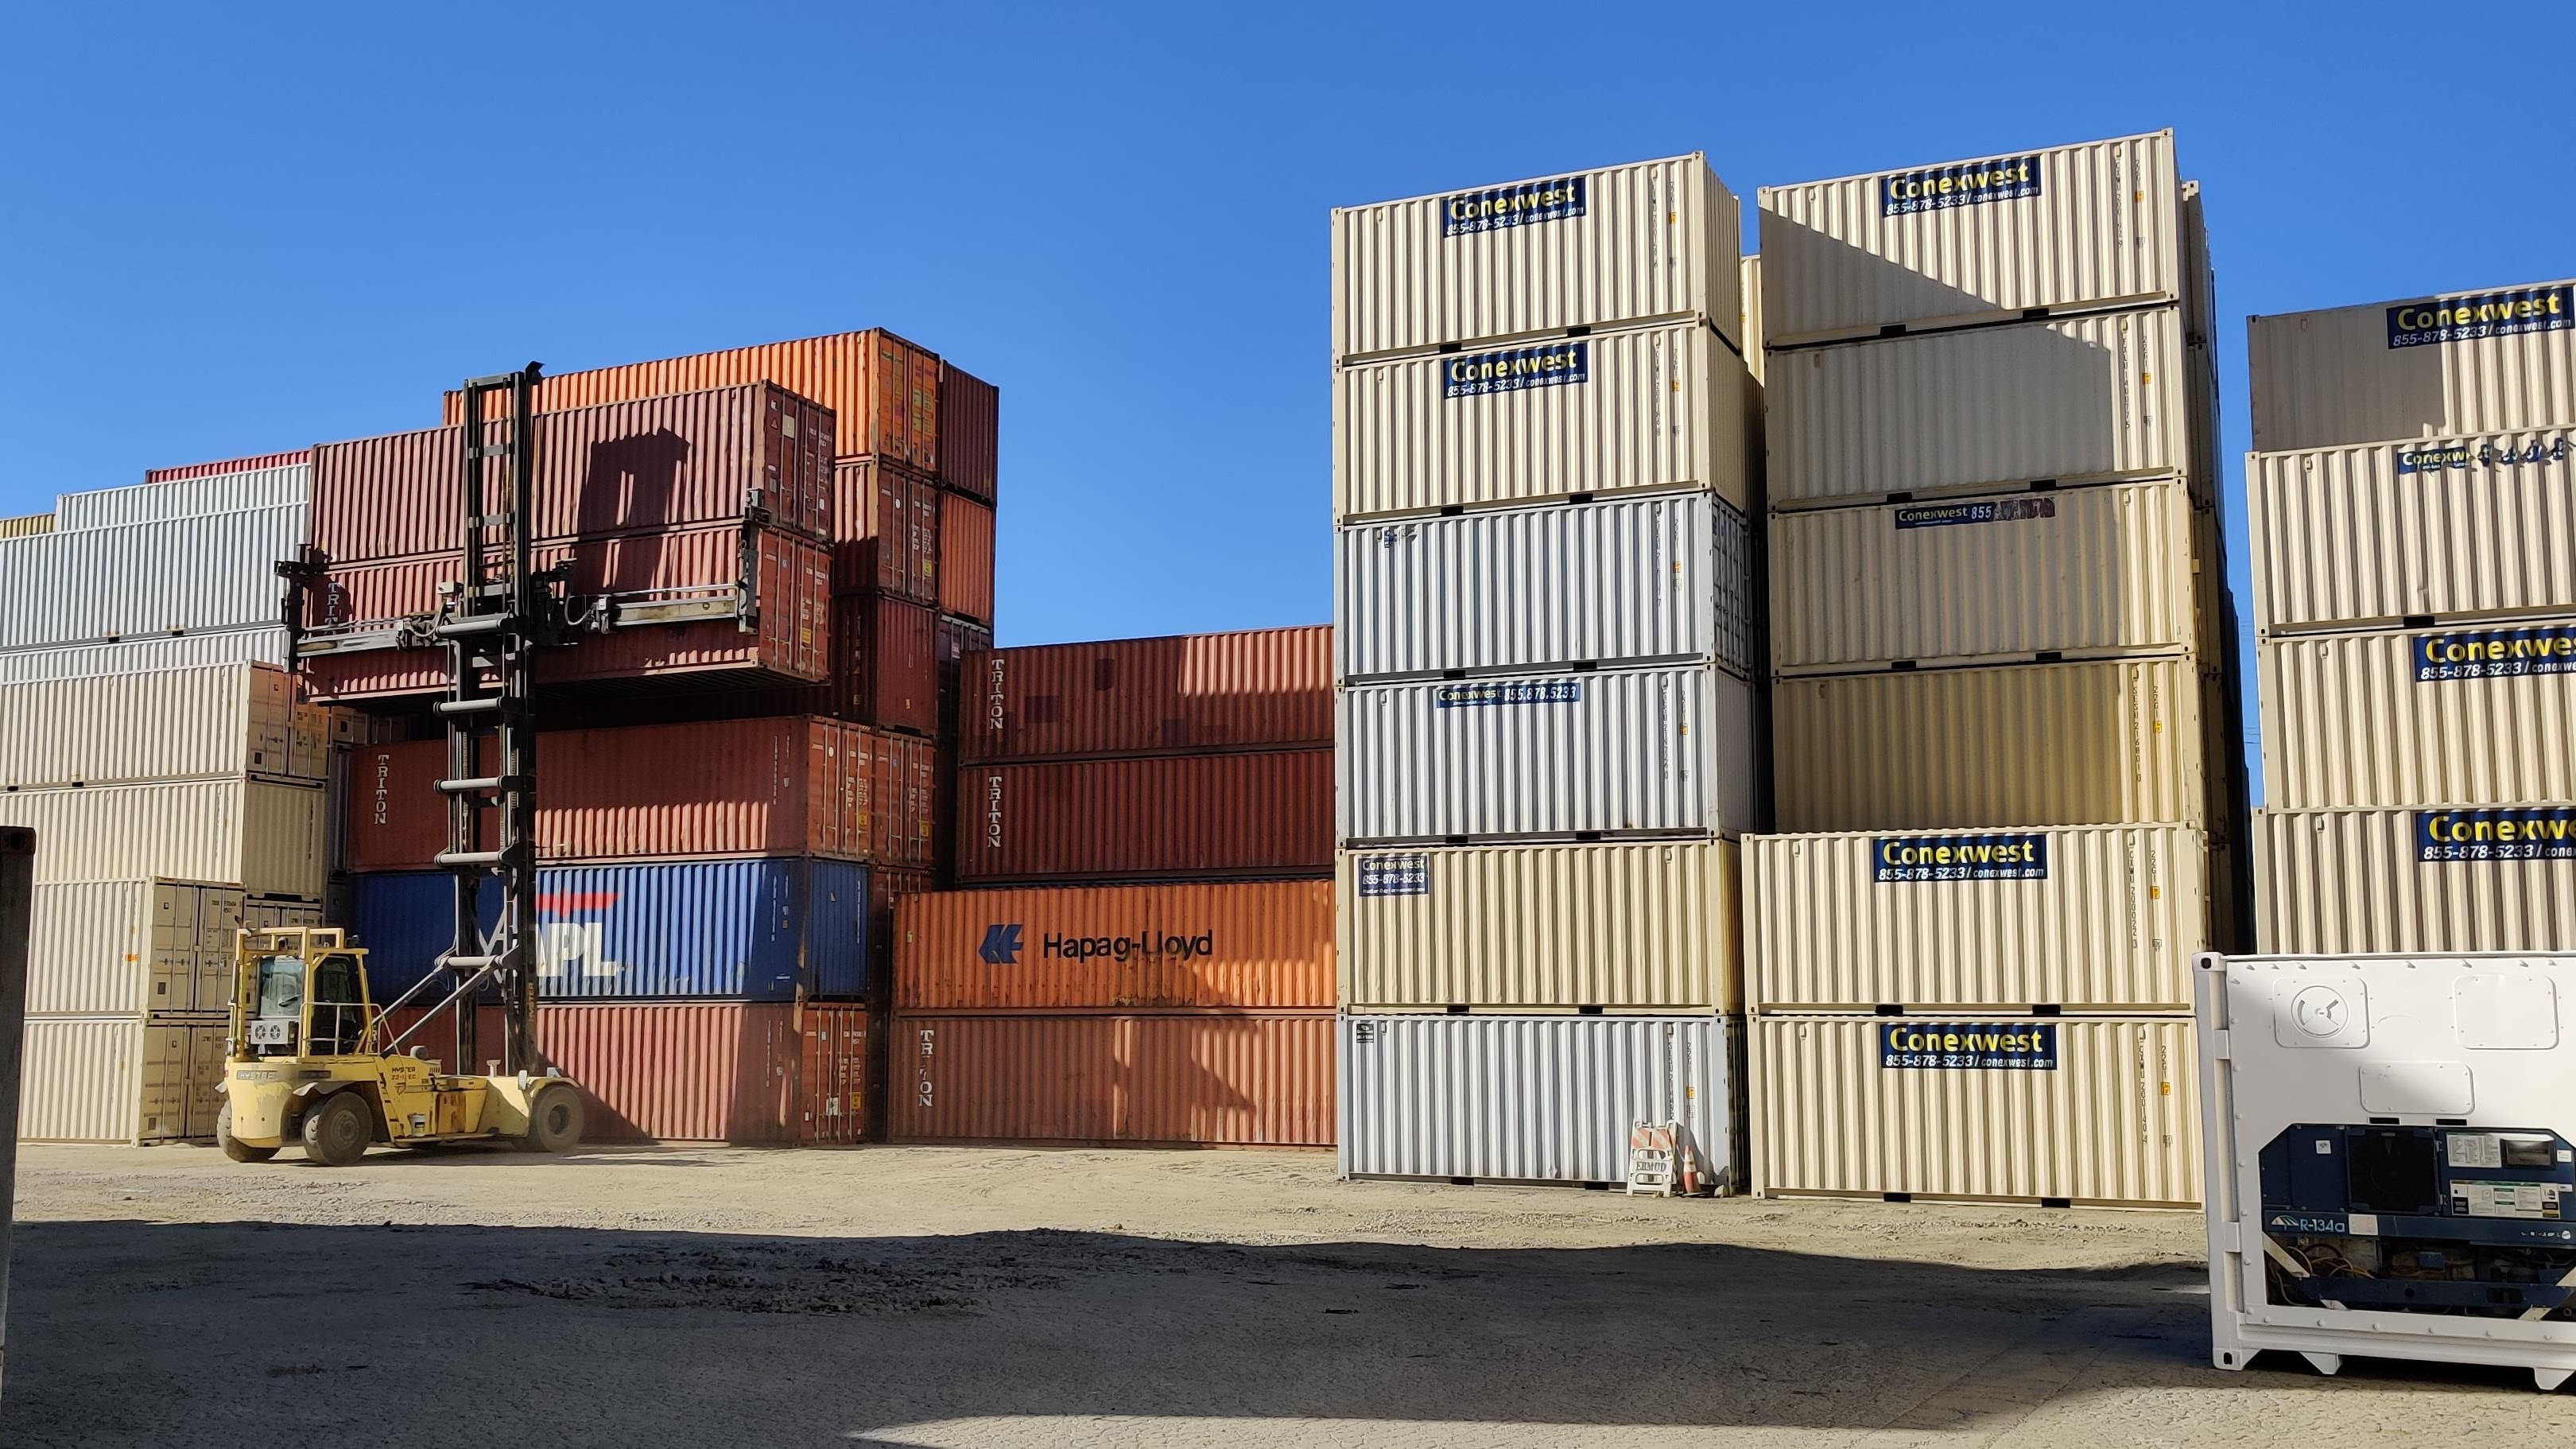 Shipping container depot with forklift